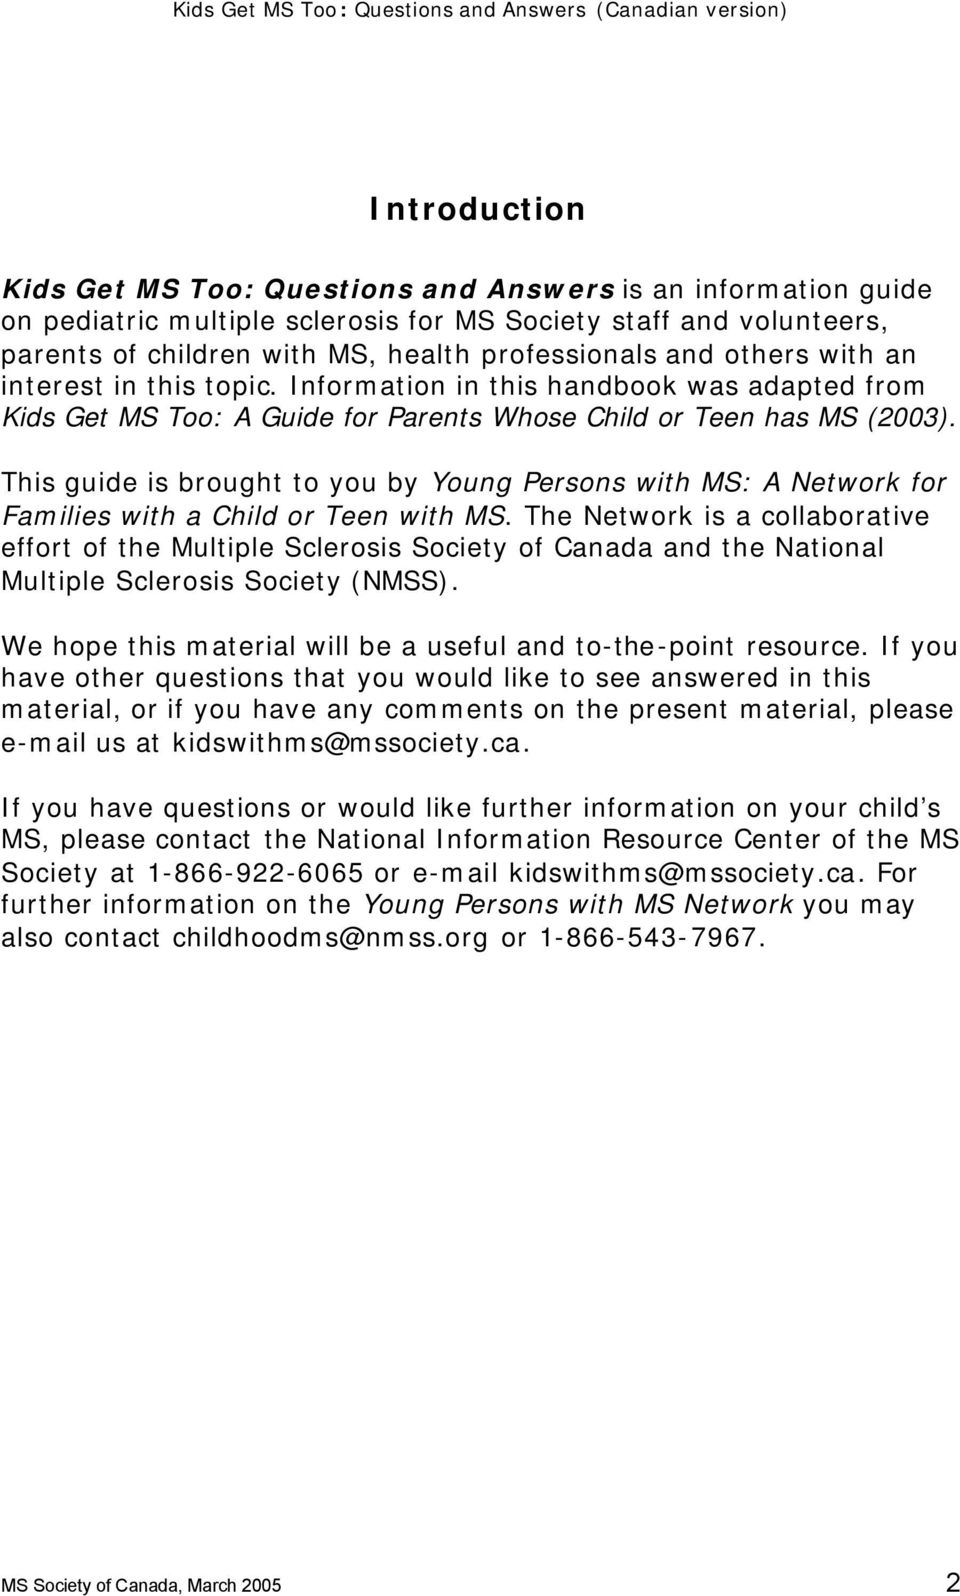 This guide is brought to you by Young Persons with MS: A Network for Families with a Child or Teen with MS.